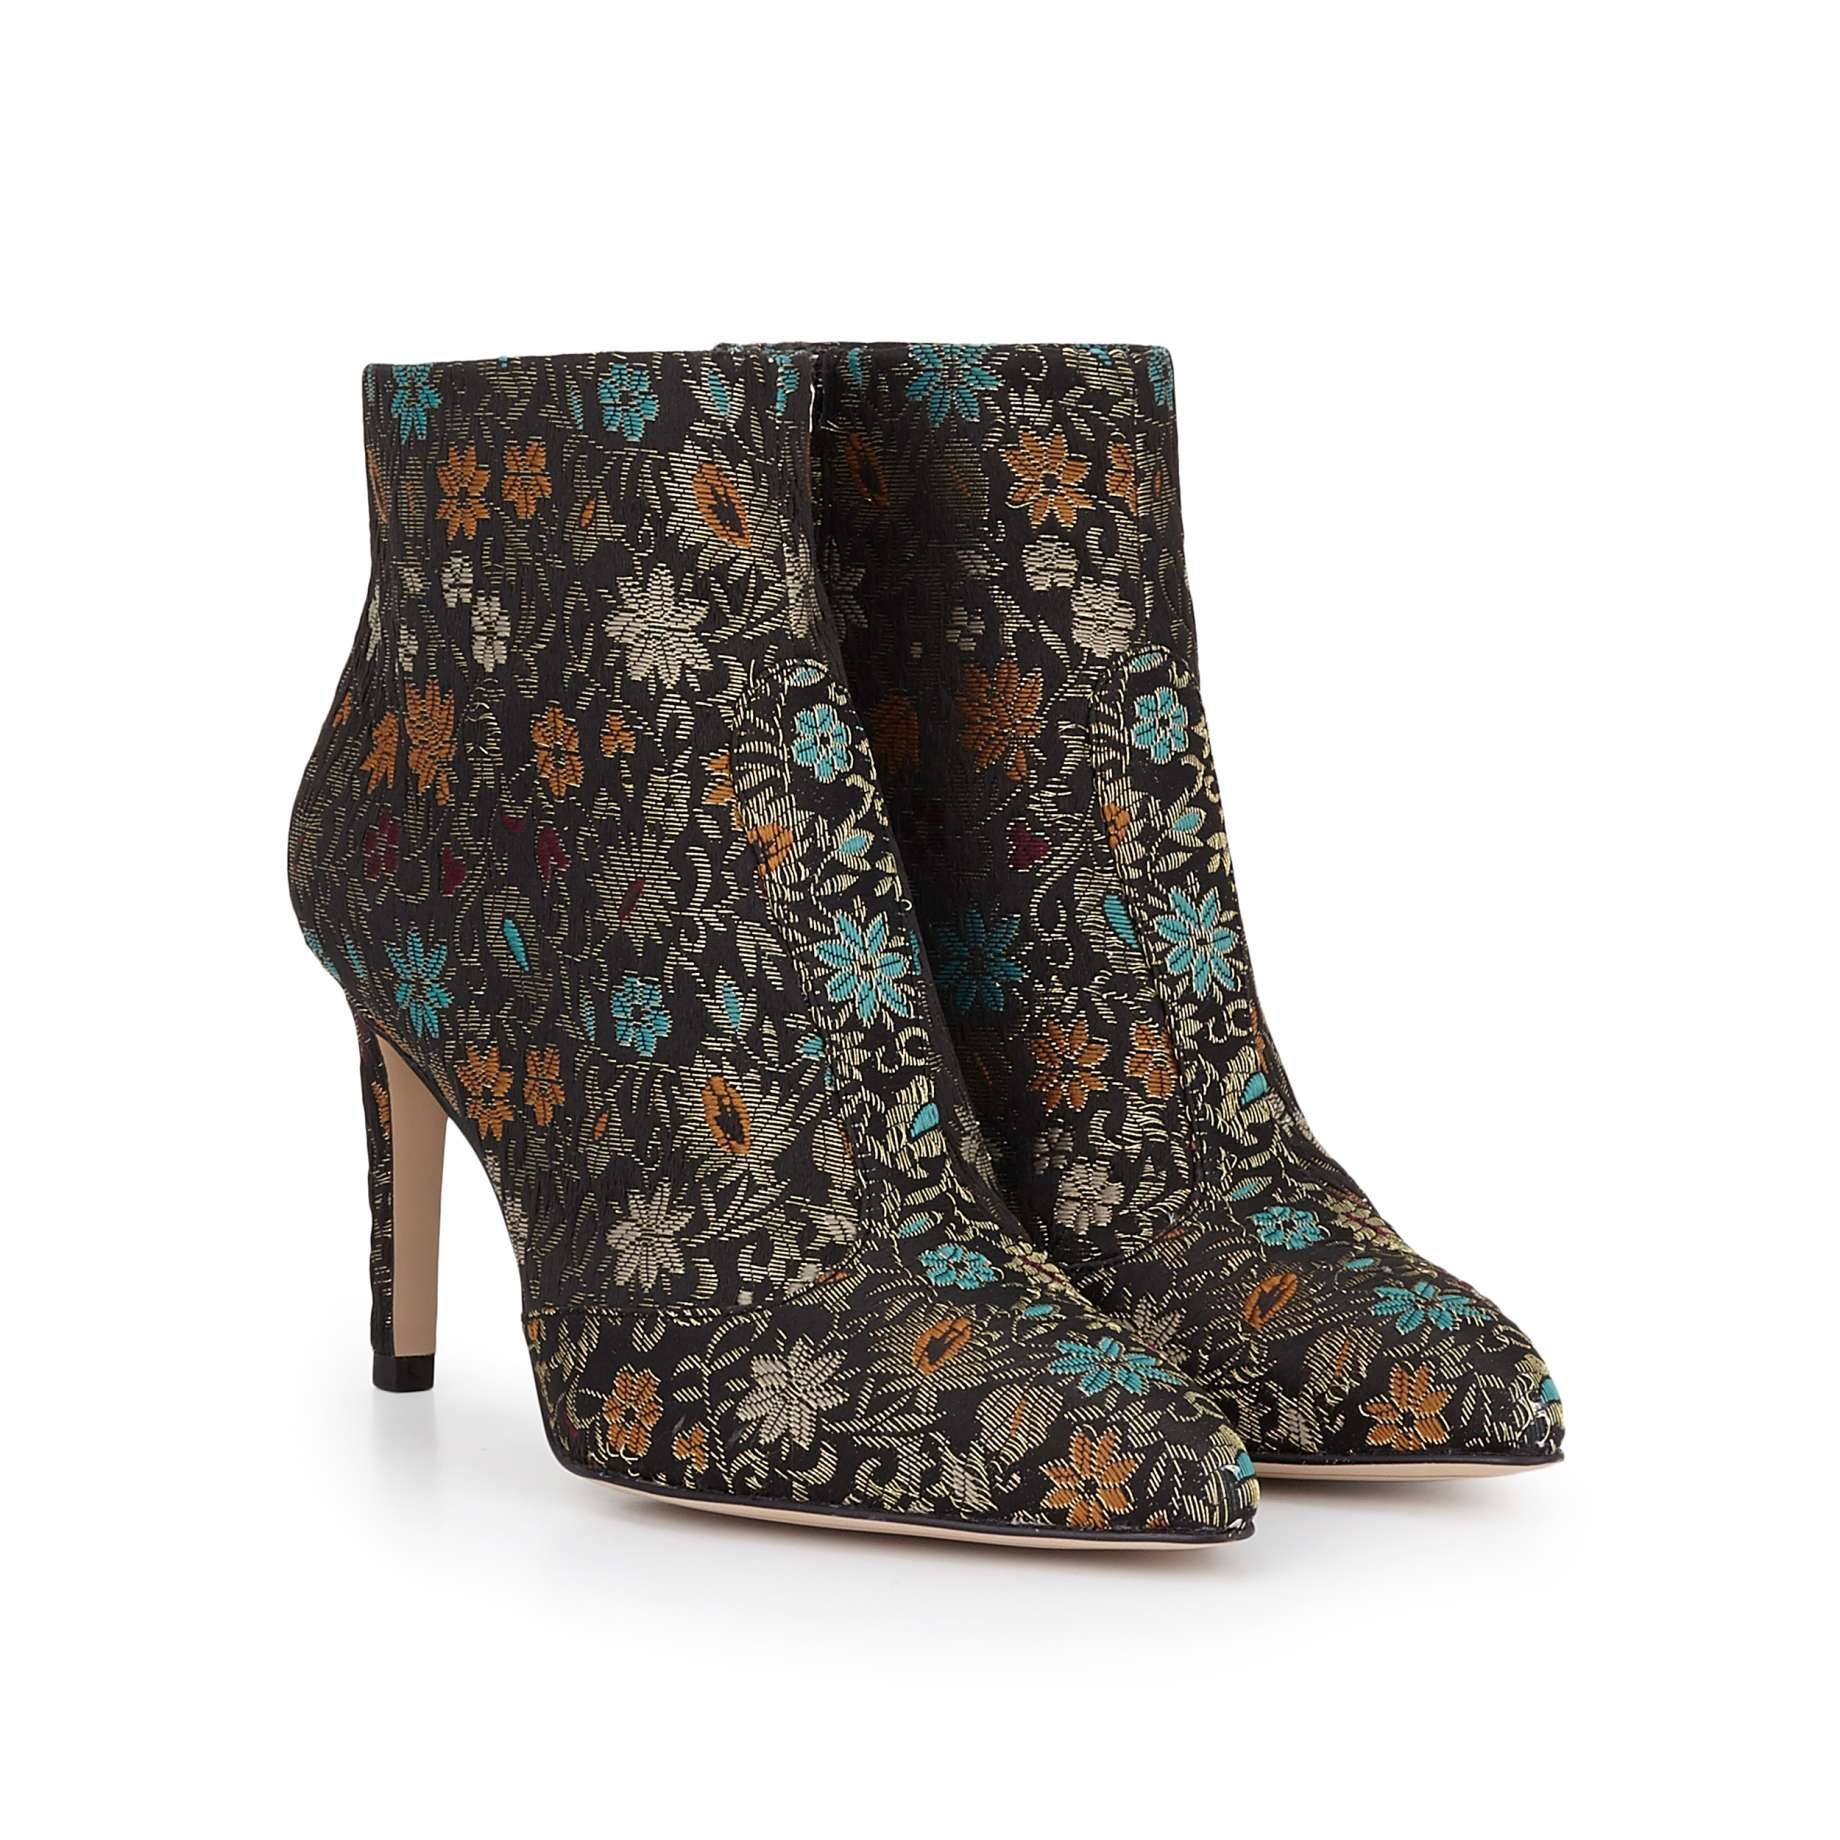 a9493aa72b64c4 Olette Pointed Toe Bootie by Sam Edelman - Black Gold Brocade - View 1